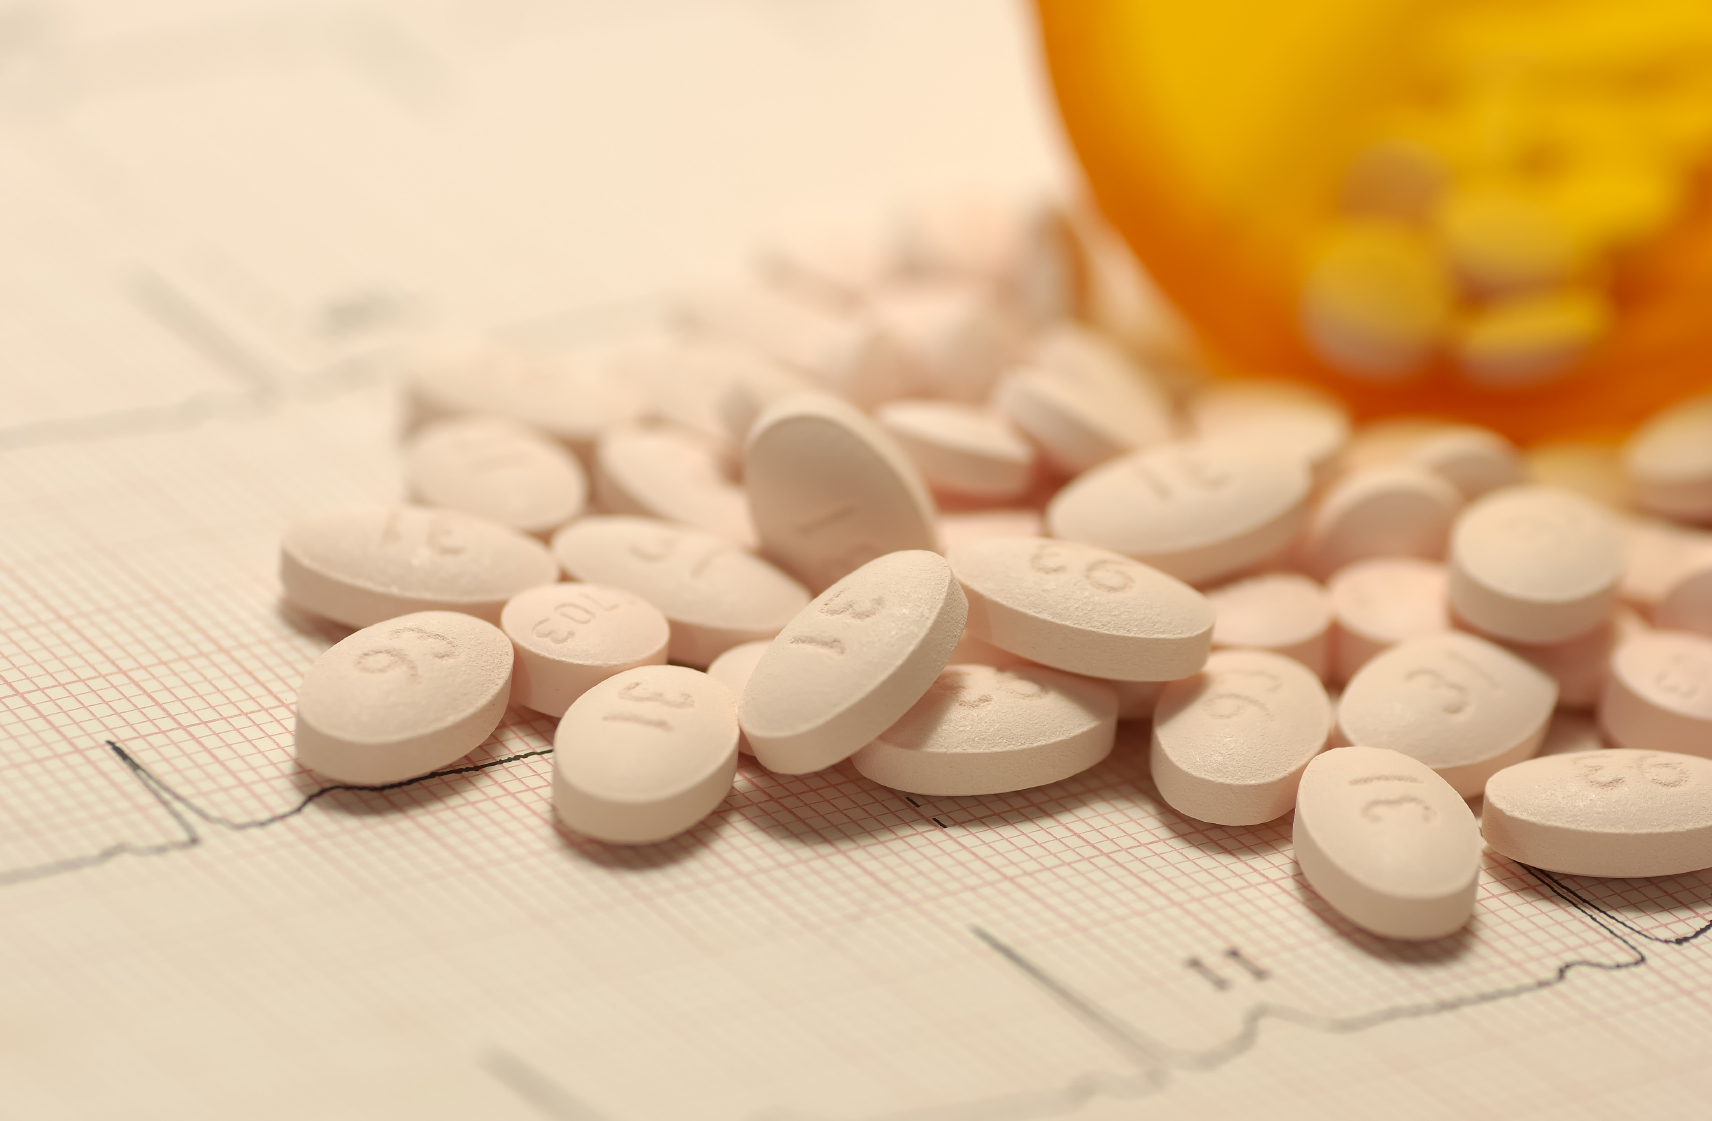 They're the most dangerous drugs your doctor can give you. It's bad enough they don't work… But new research shows they may be shortening your lifespan.